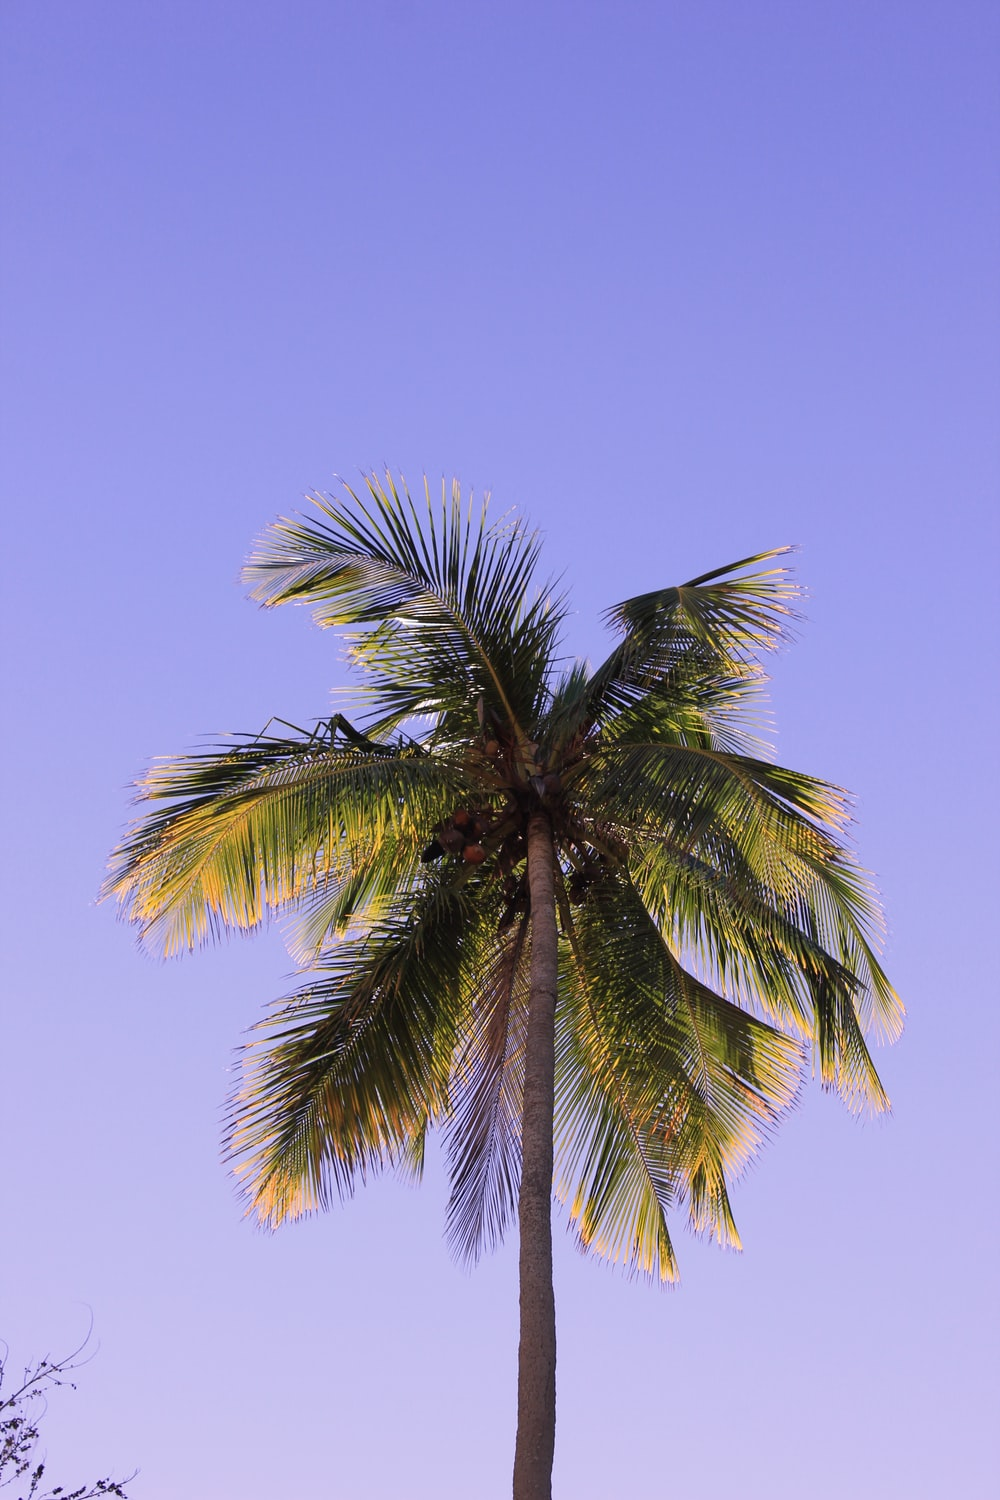 coconut palm tree under blue sky at daytime